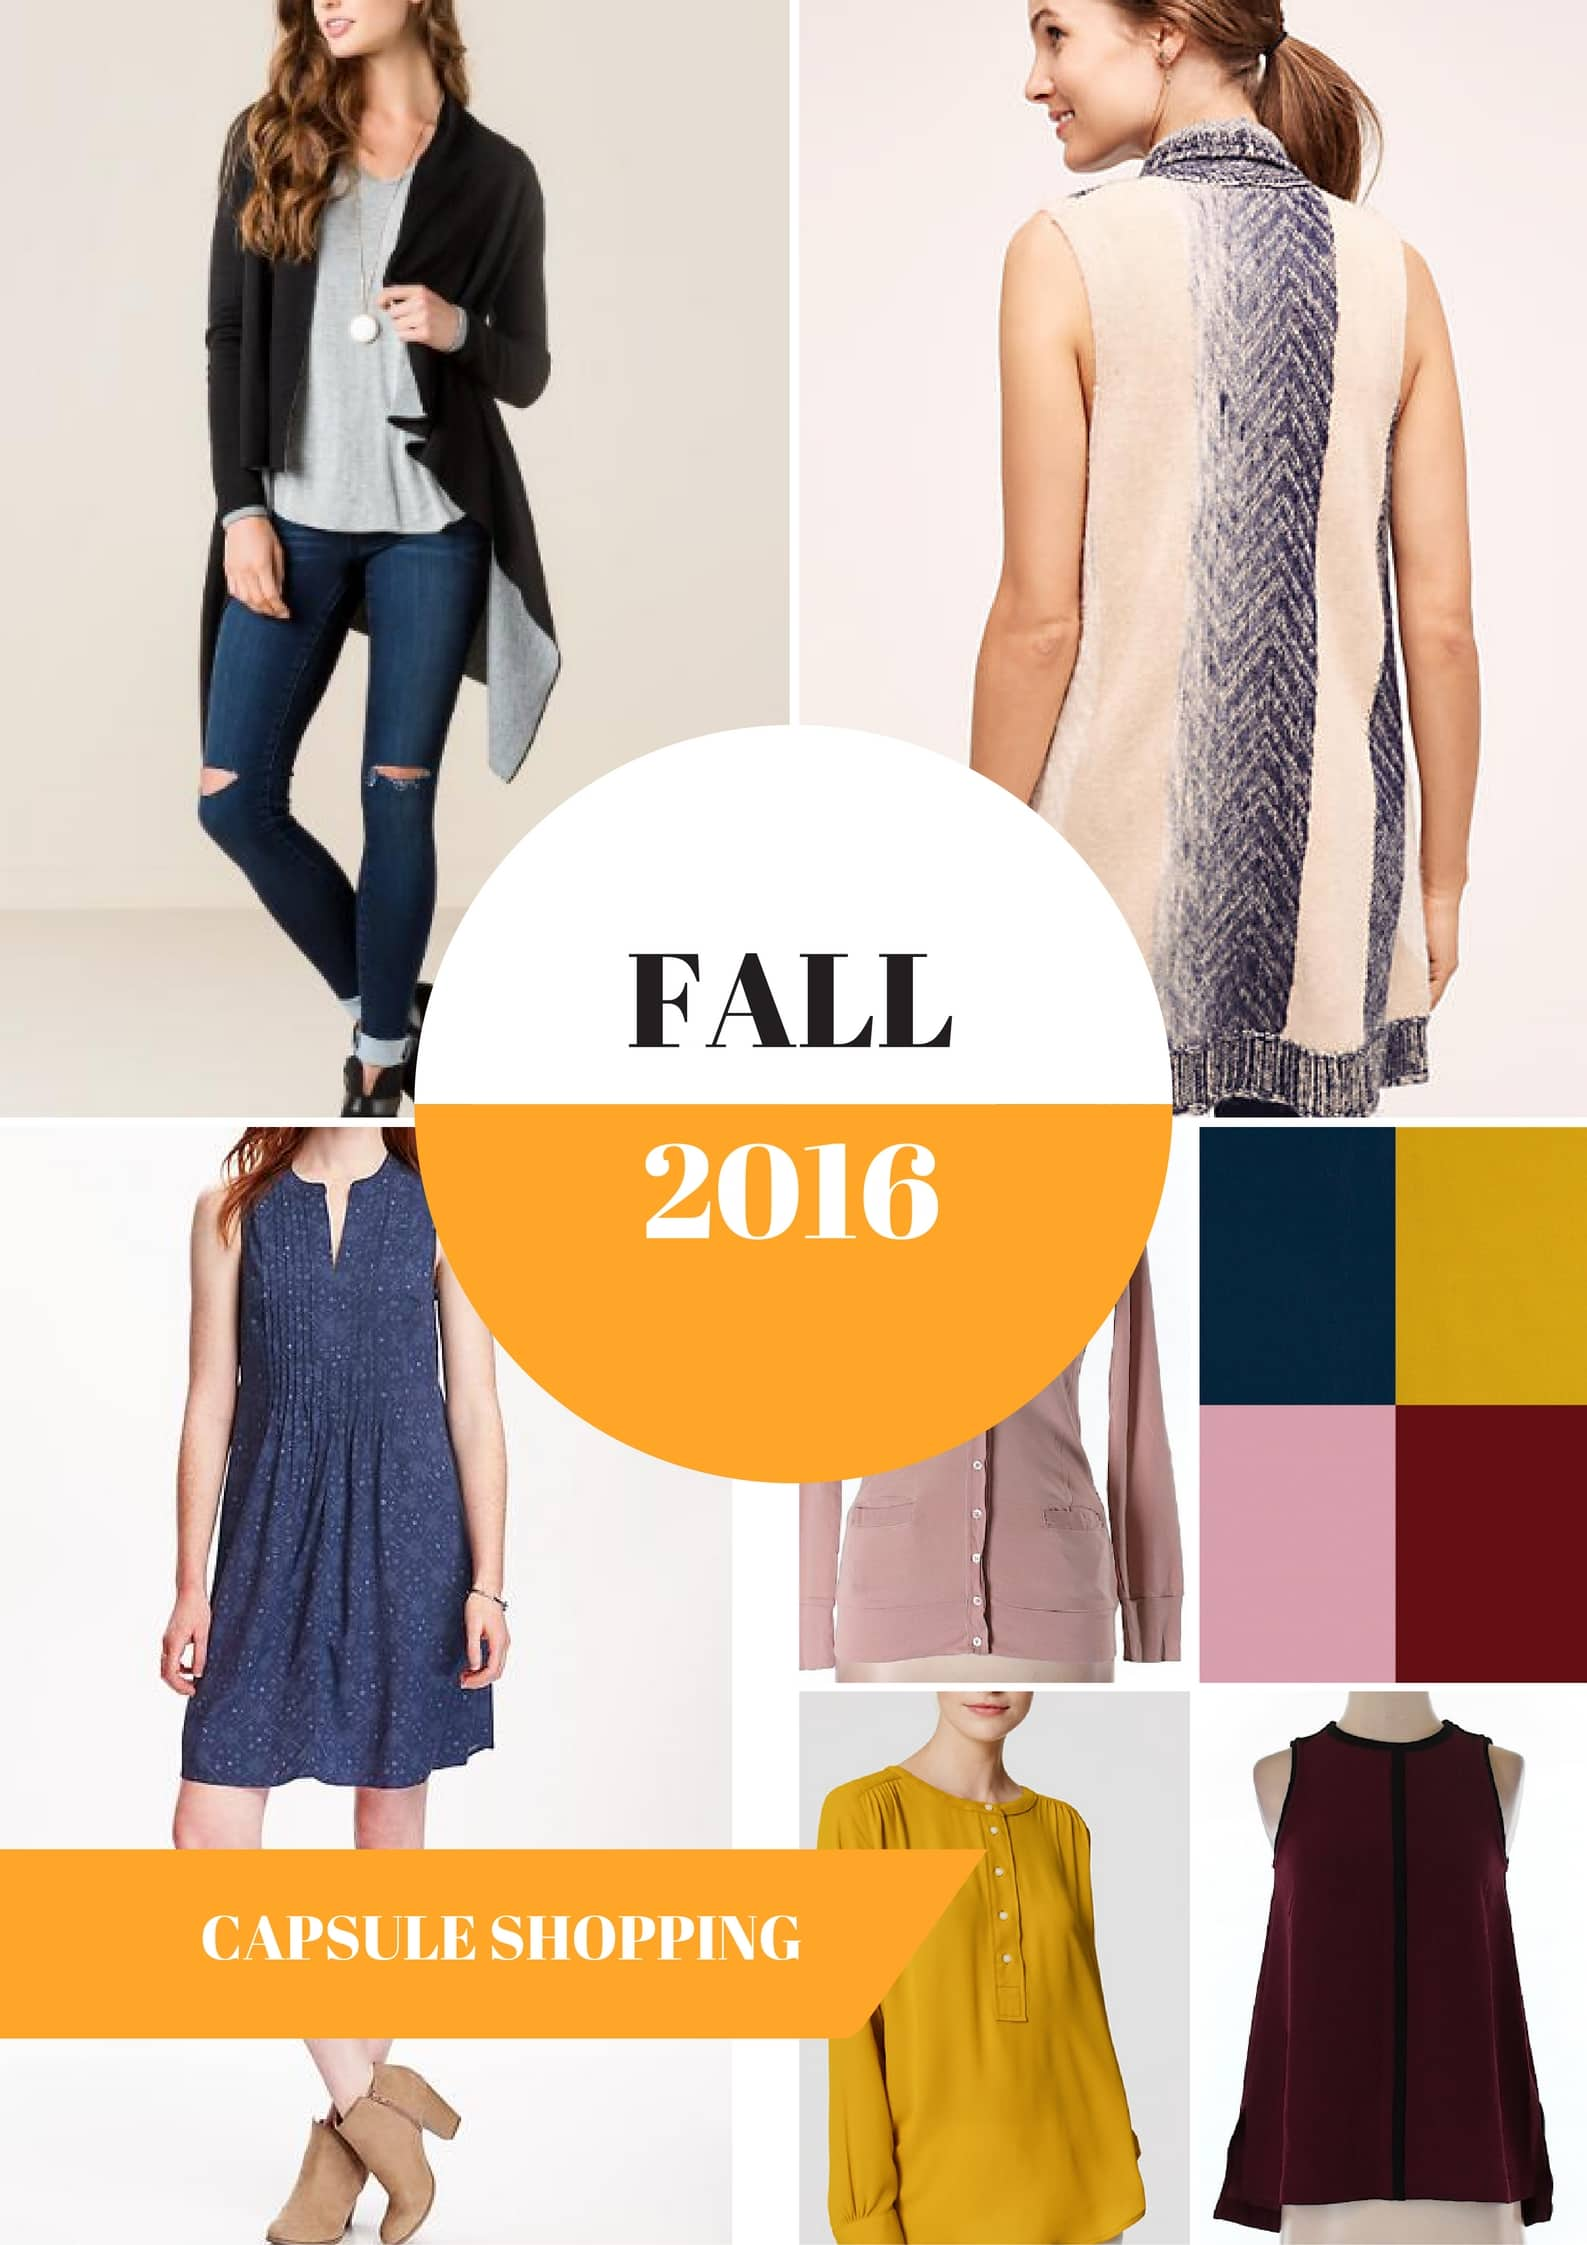 Fall-2016-Capsule-Wardrobe-Idea-Board